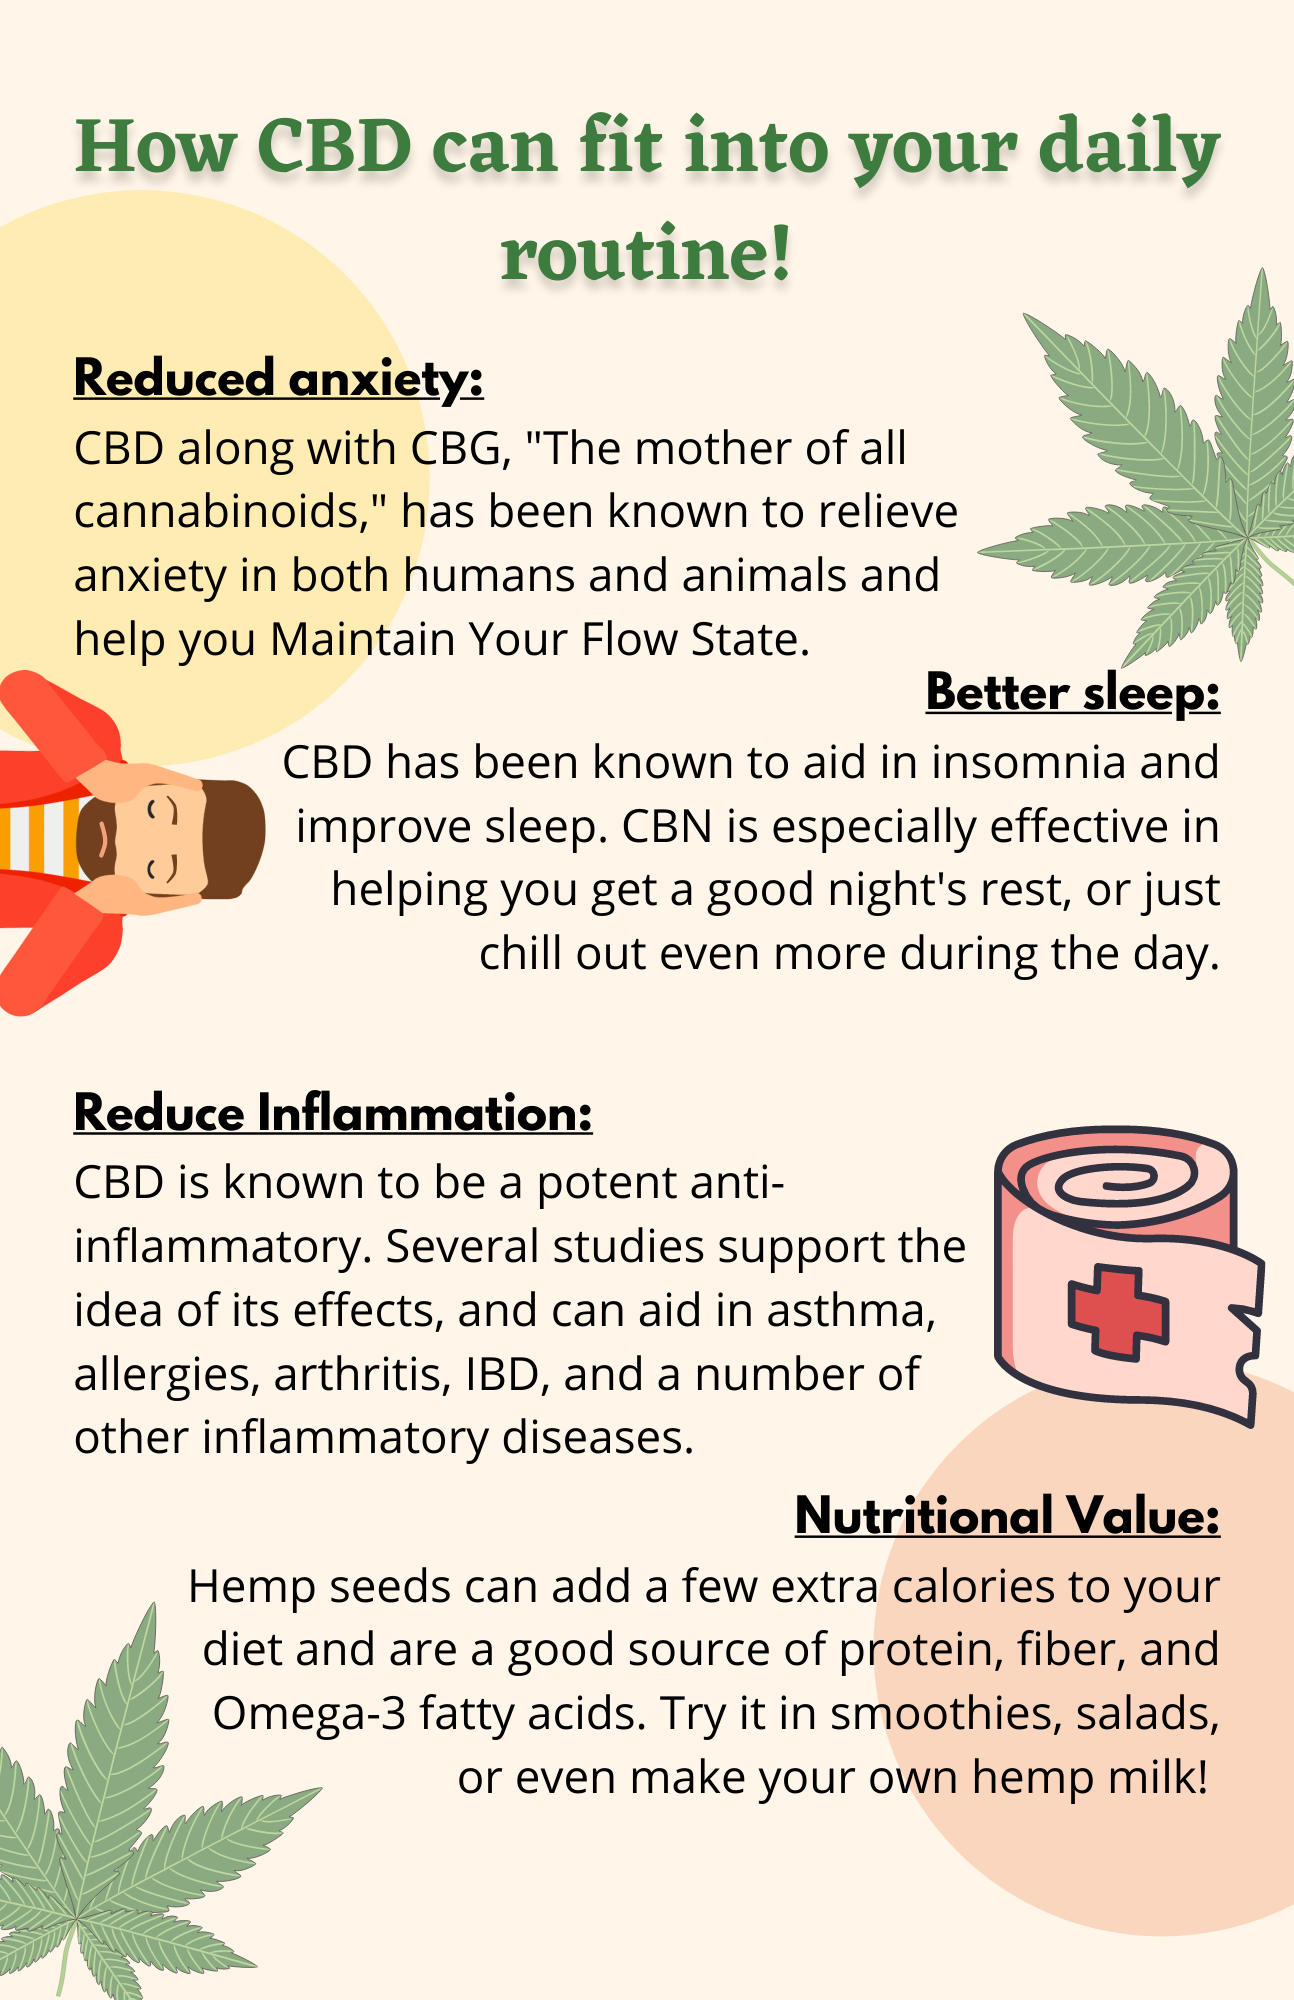 How CBD can fit into your daily routine! (3)